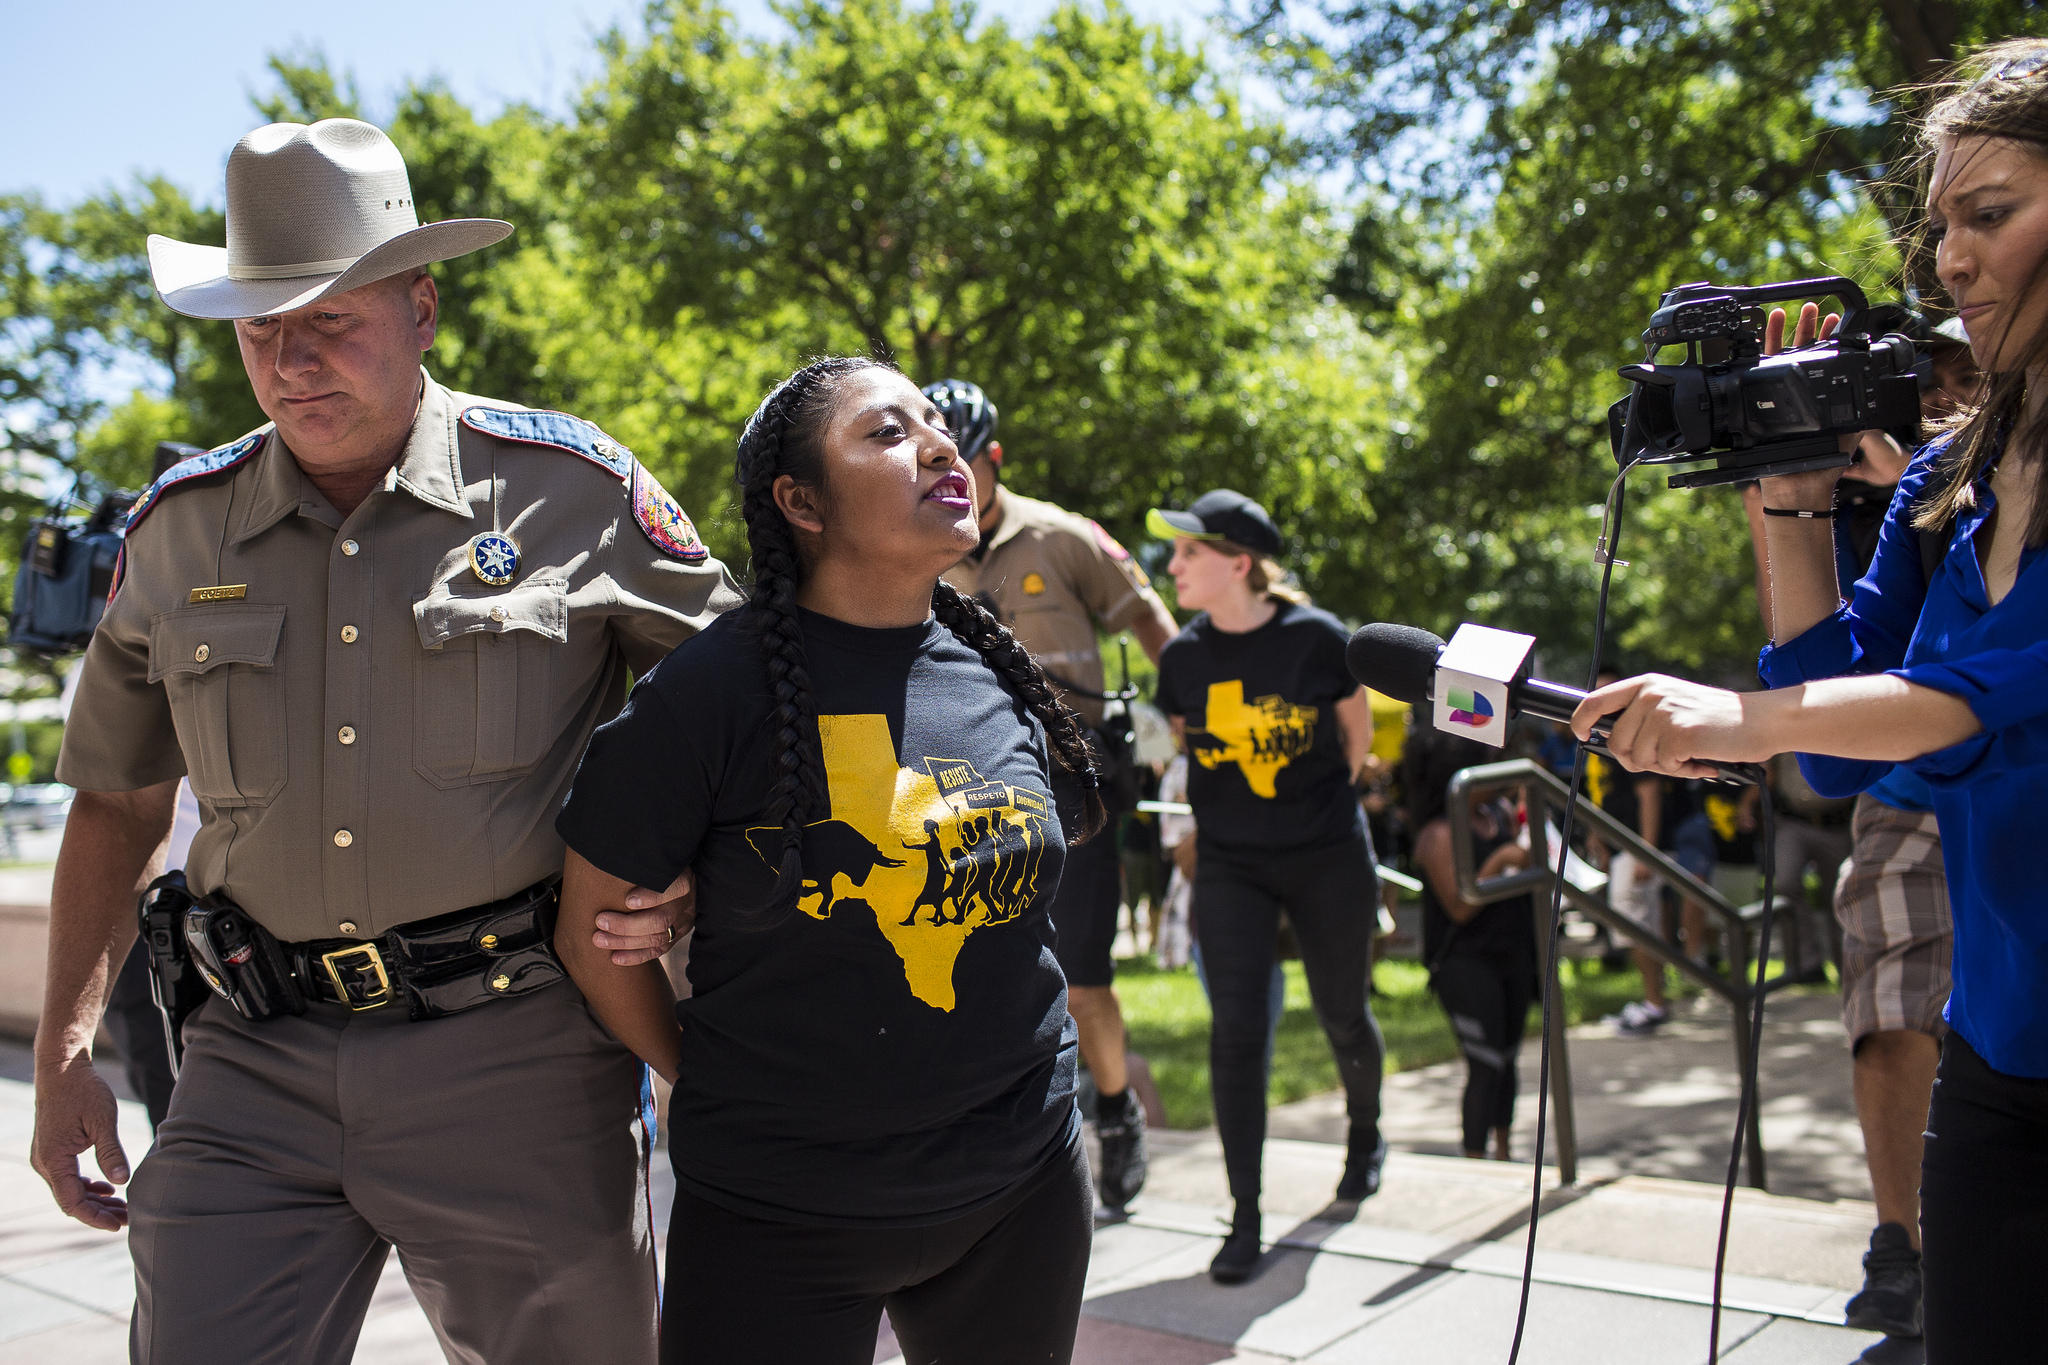 15 people arrested during Austin immigration protest